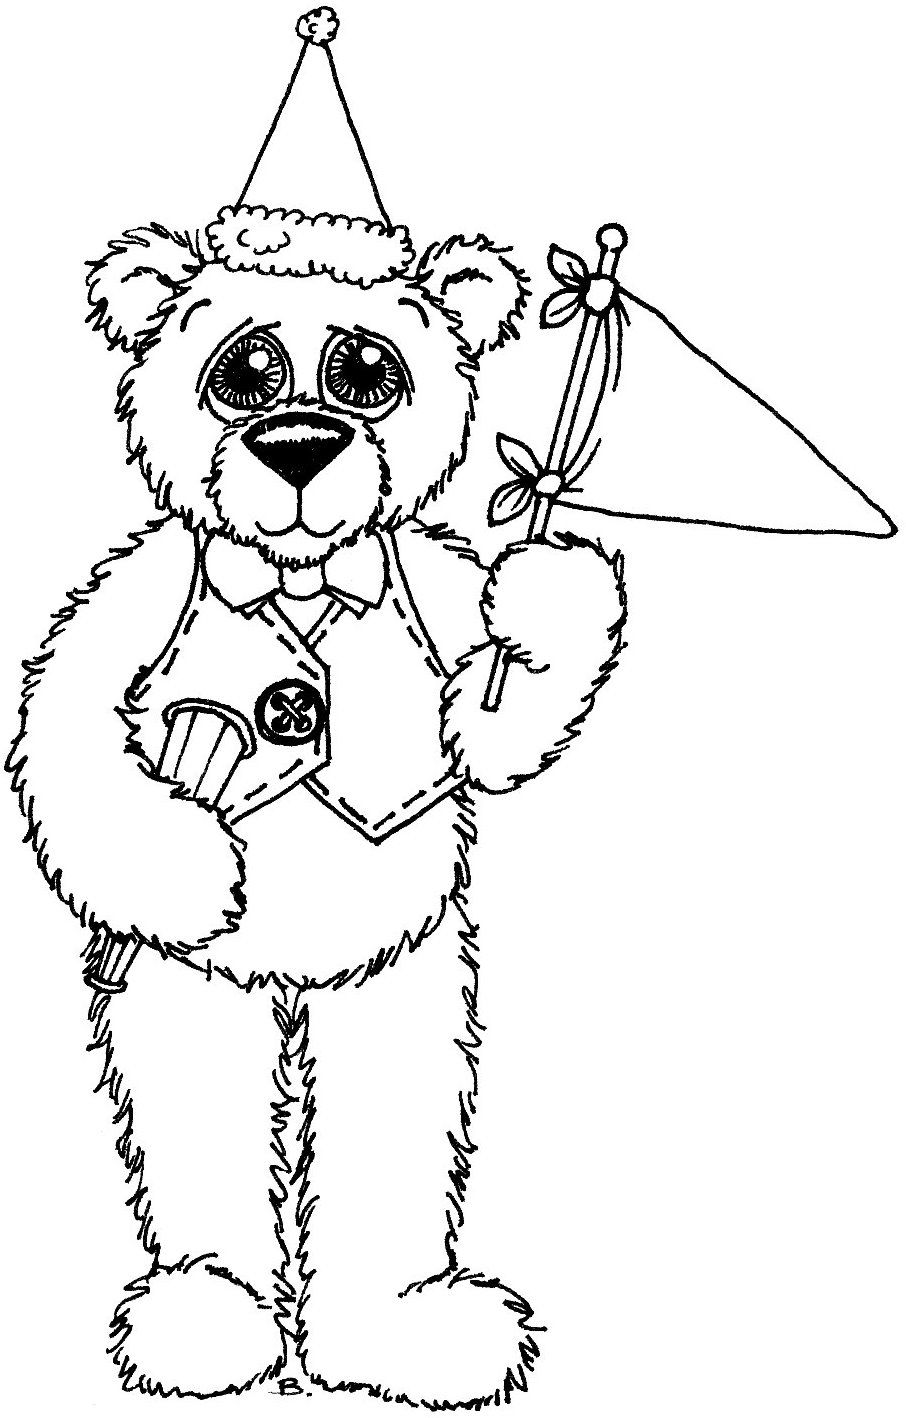 Flagbearg hand embroidery patterns pinterest hand